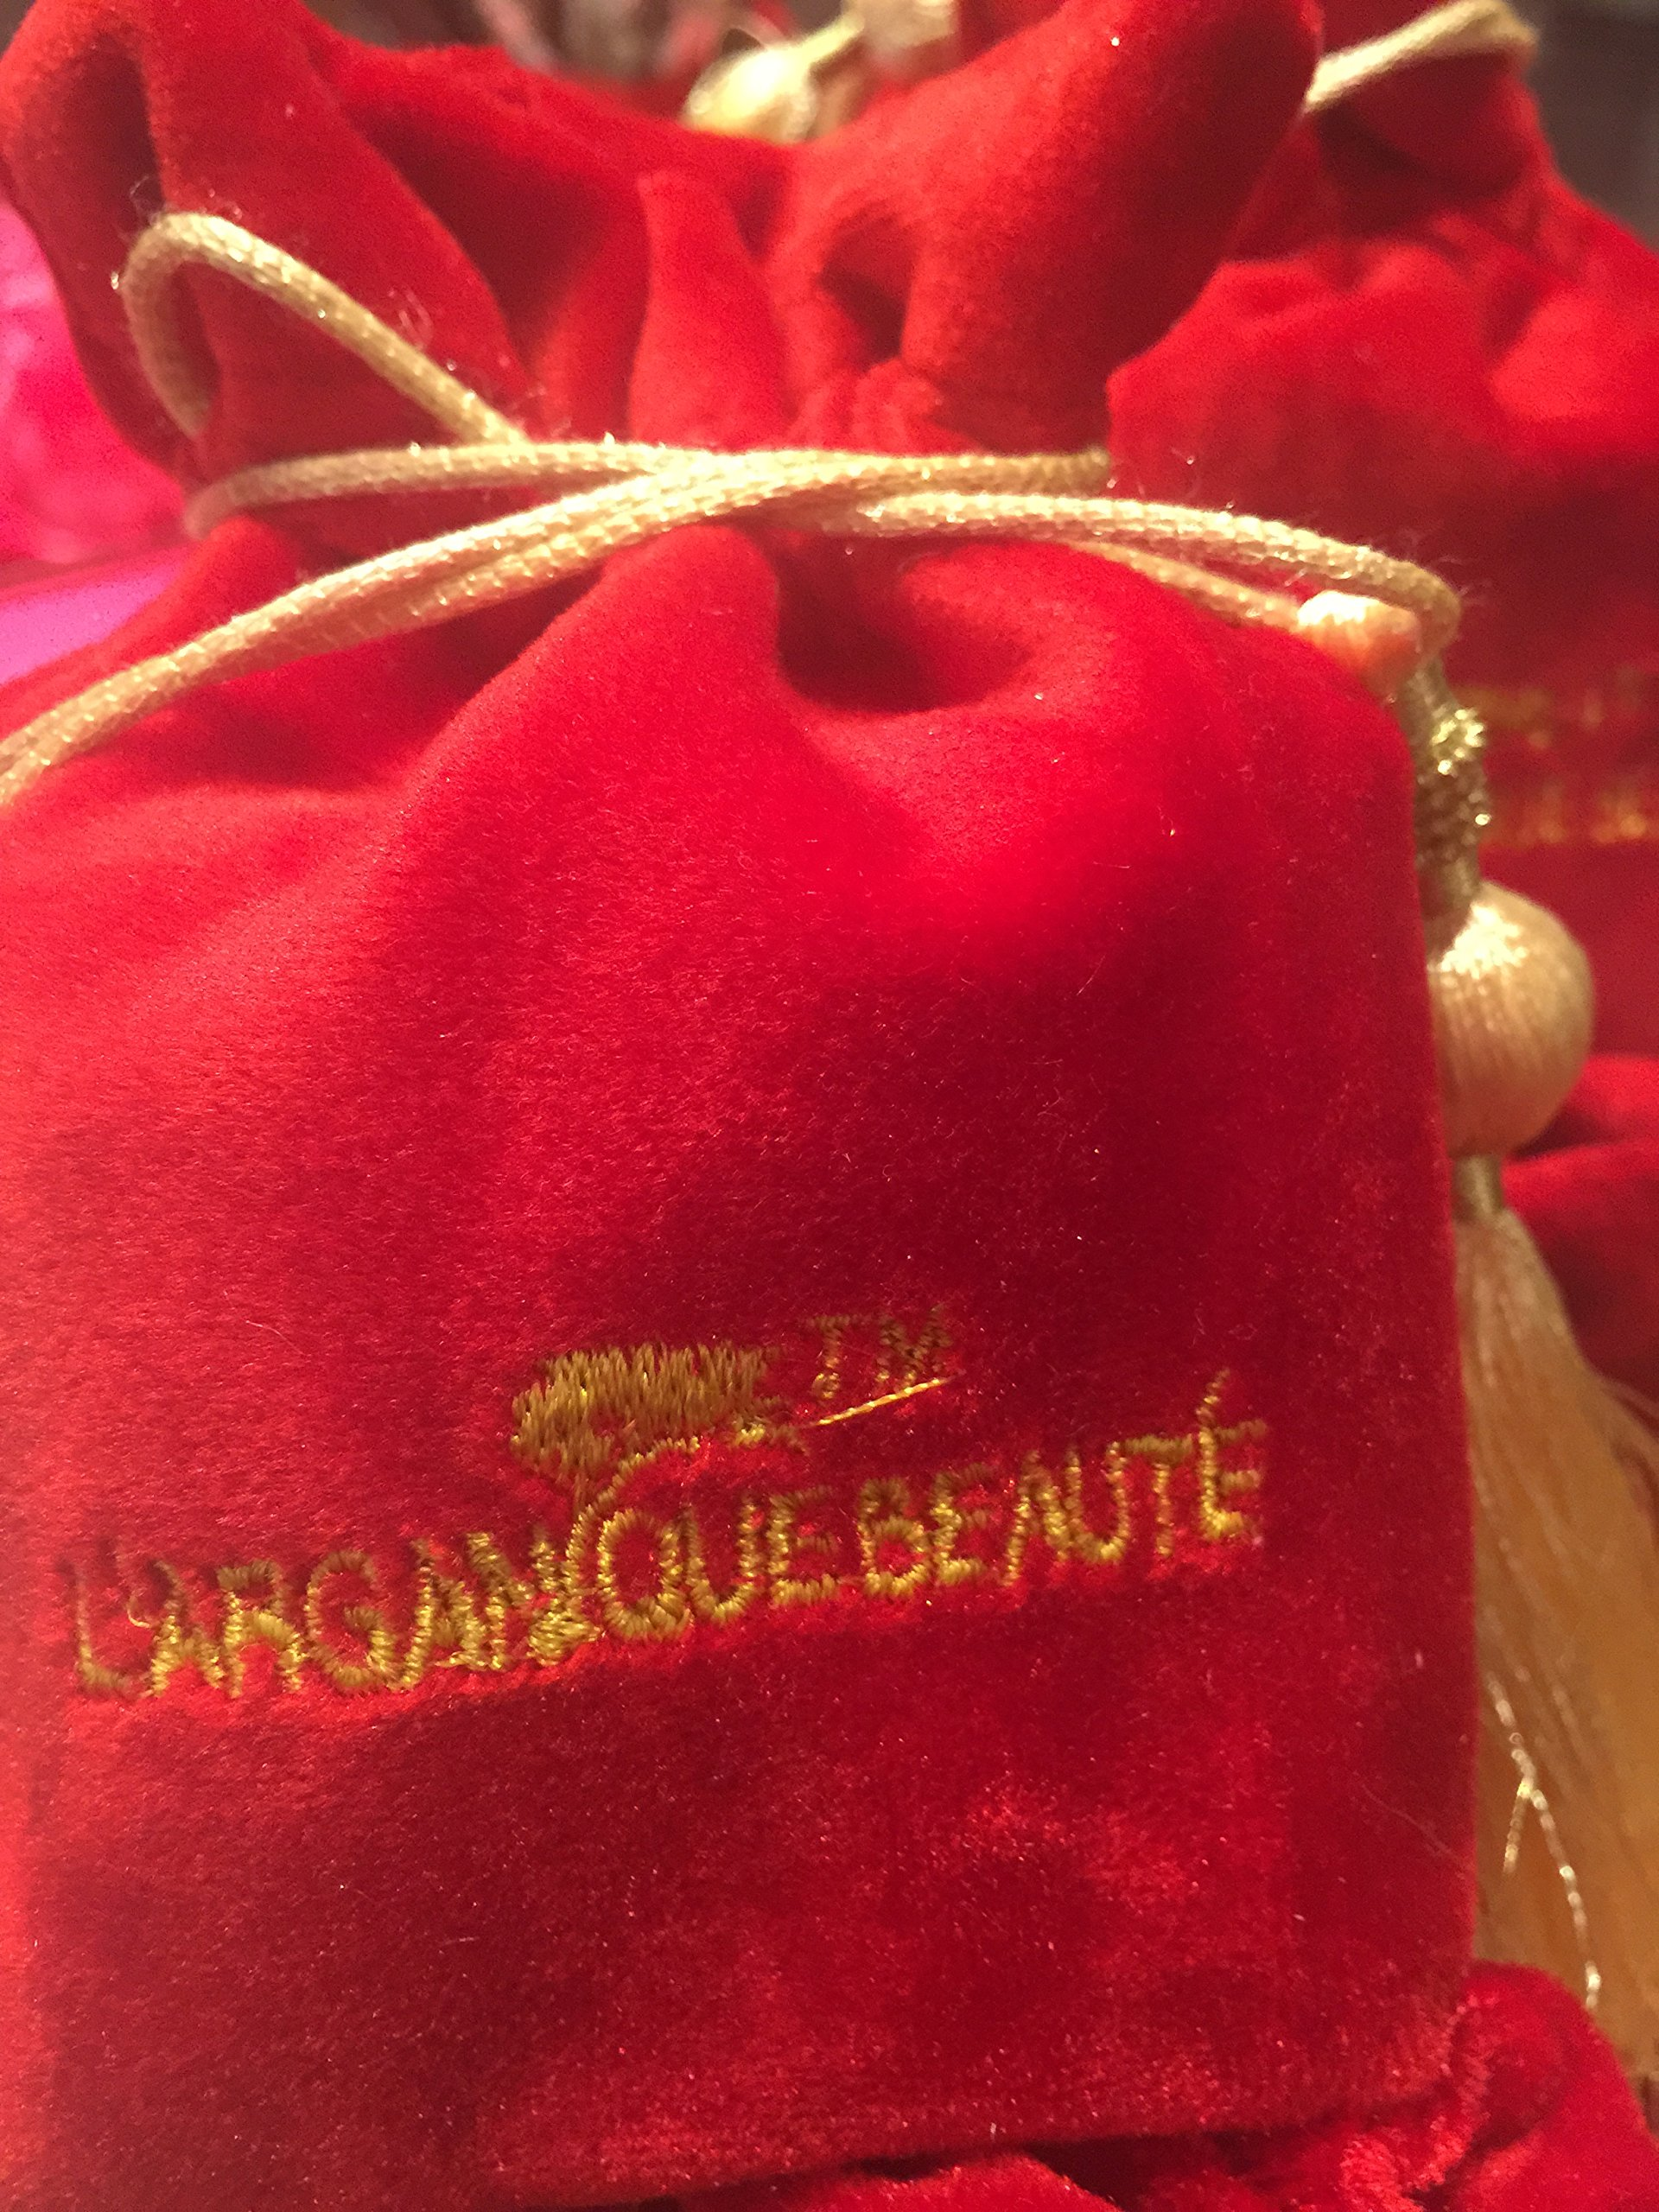 L'arganique Beauté Luxury Scented Candle, Perfumed Fragrance Spa Candle - 100% Soy Wax, Lead-Free Wick, Pure Moroccan Argan Oil Essence - for Baths, Valentine's Day, Holidays, Large (14.1oz)